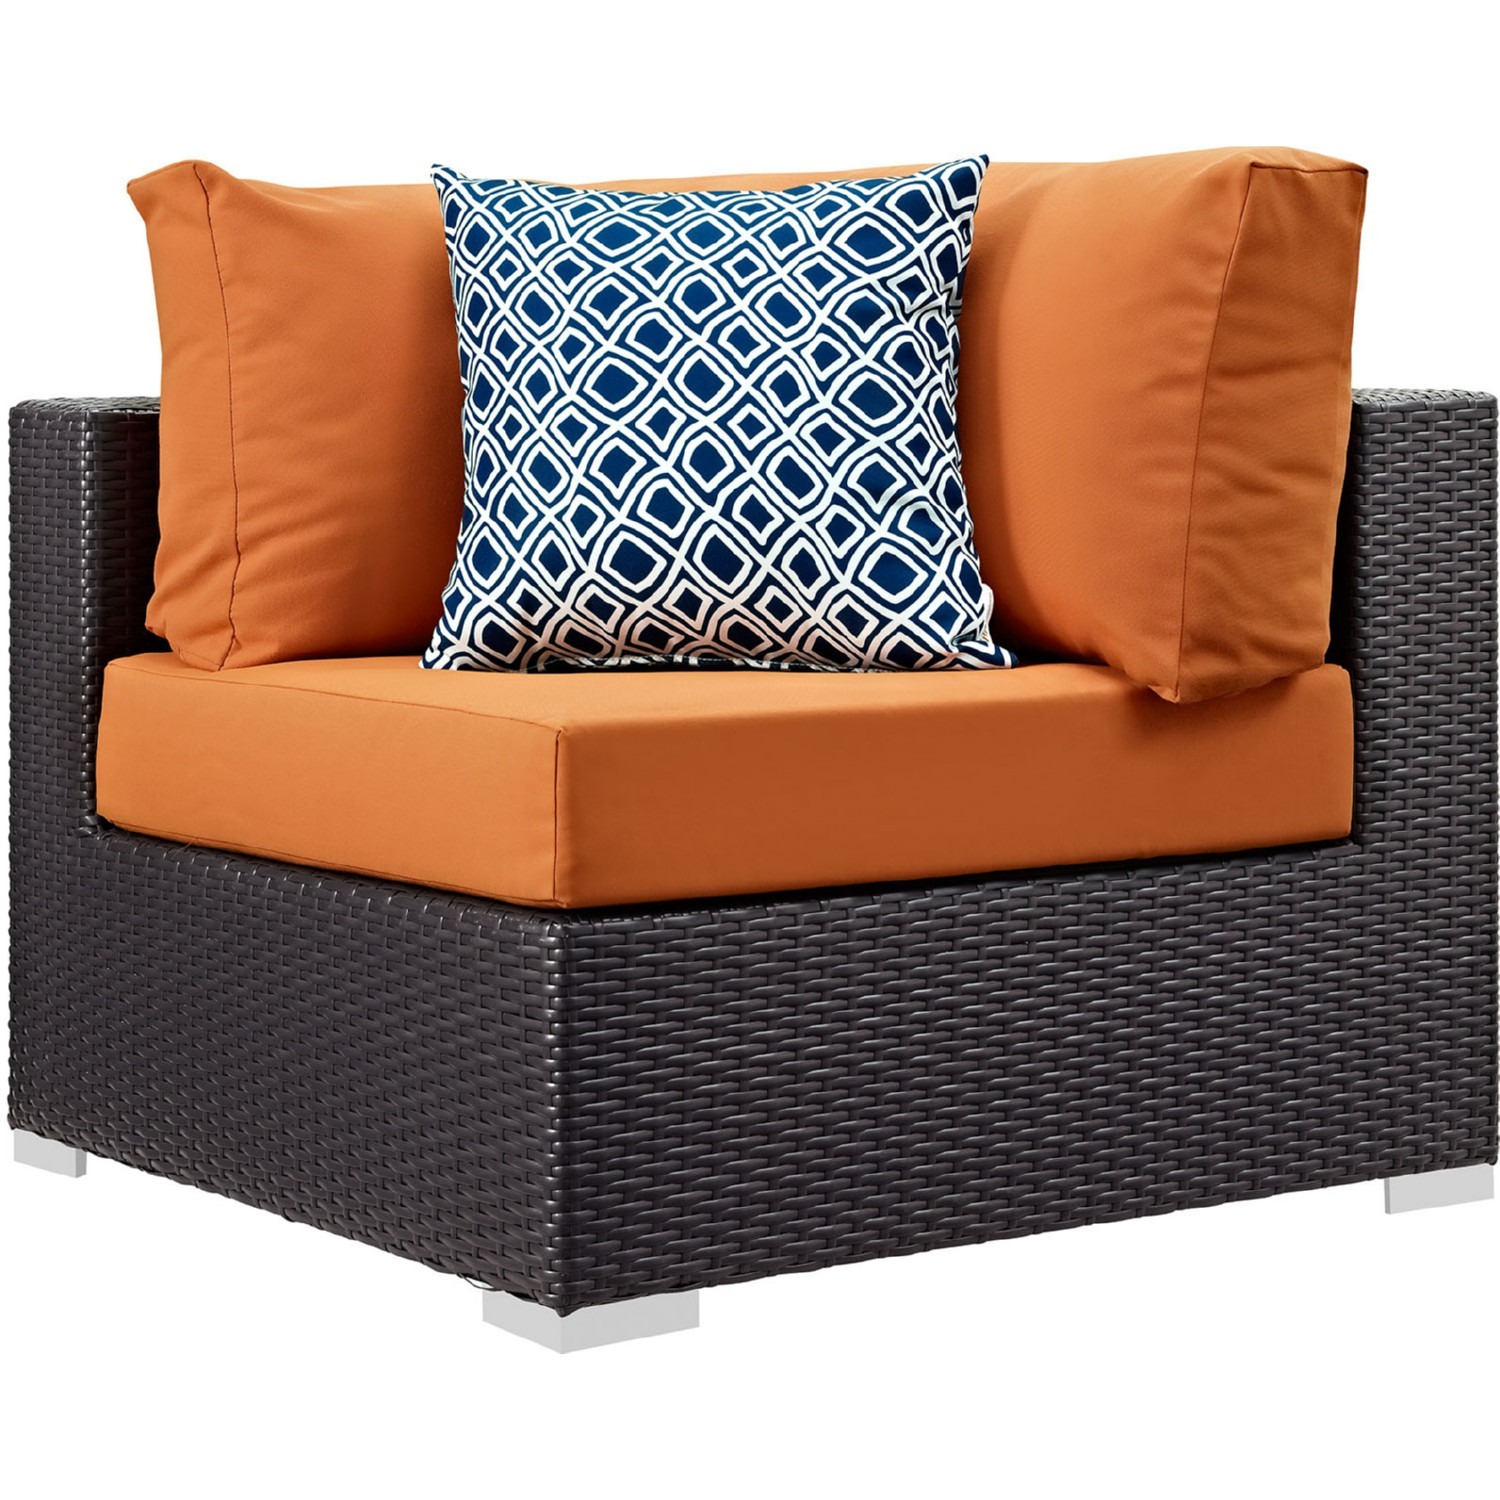 5-Piece Outdoor Sectional In Orange Fabric Cushion - image-1